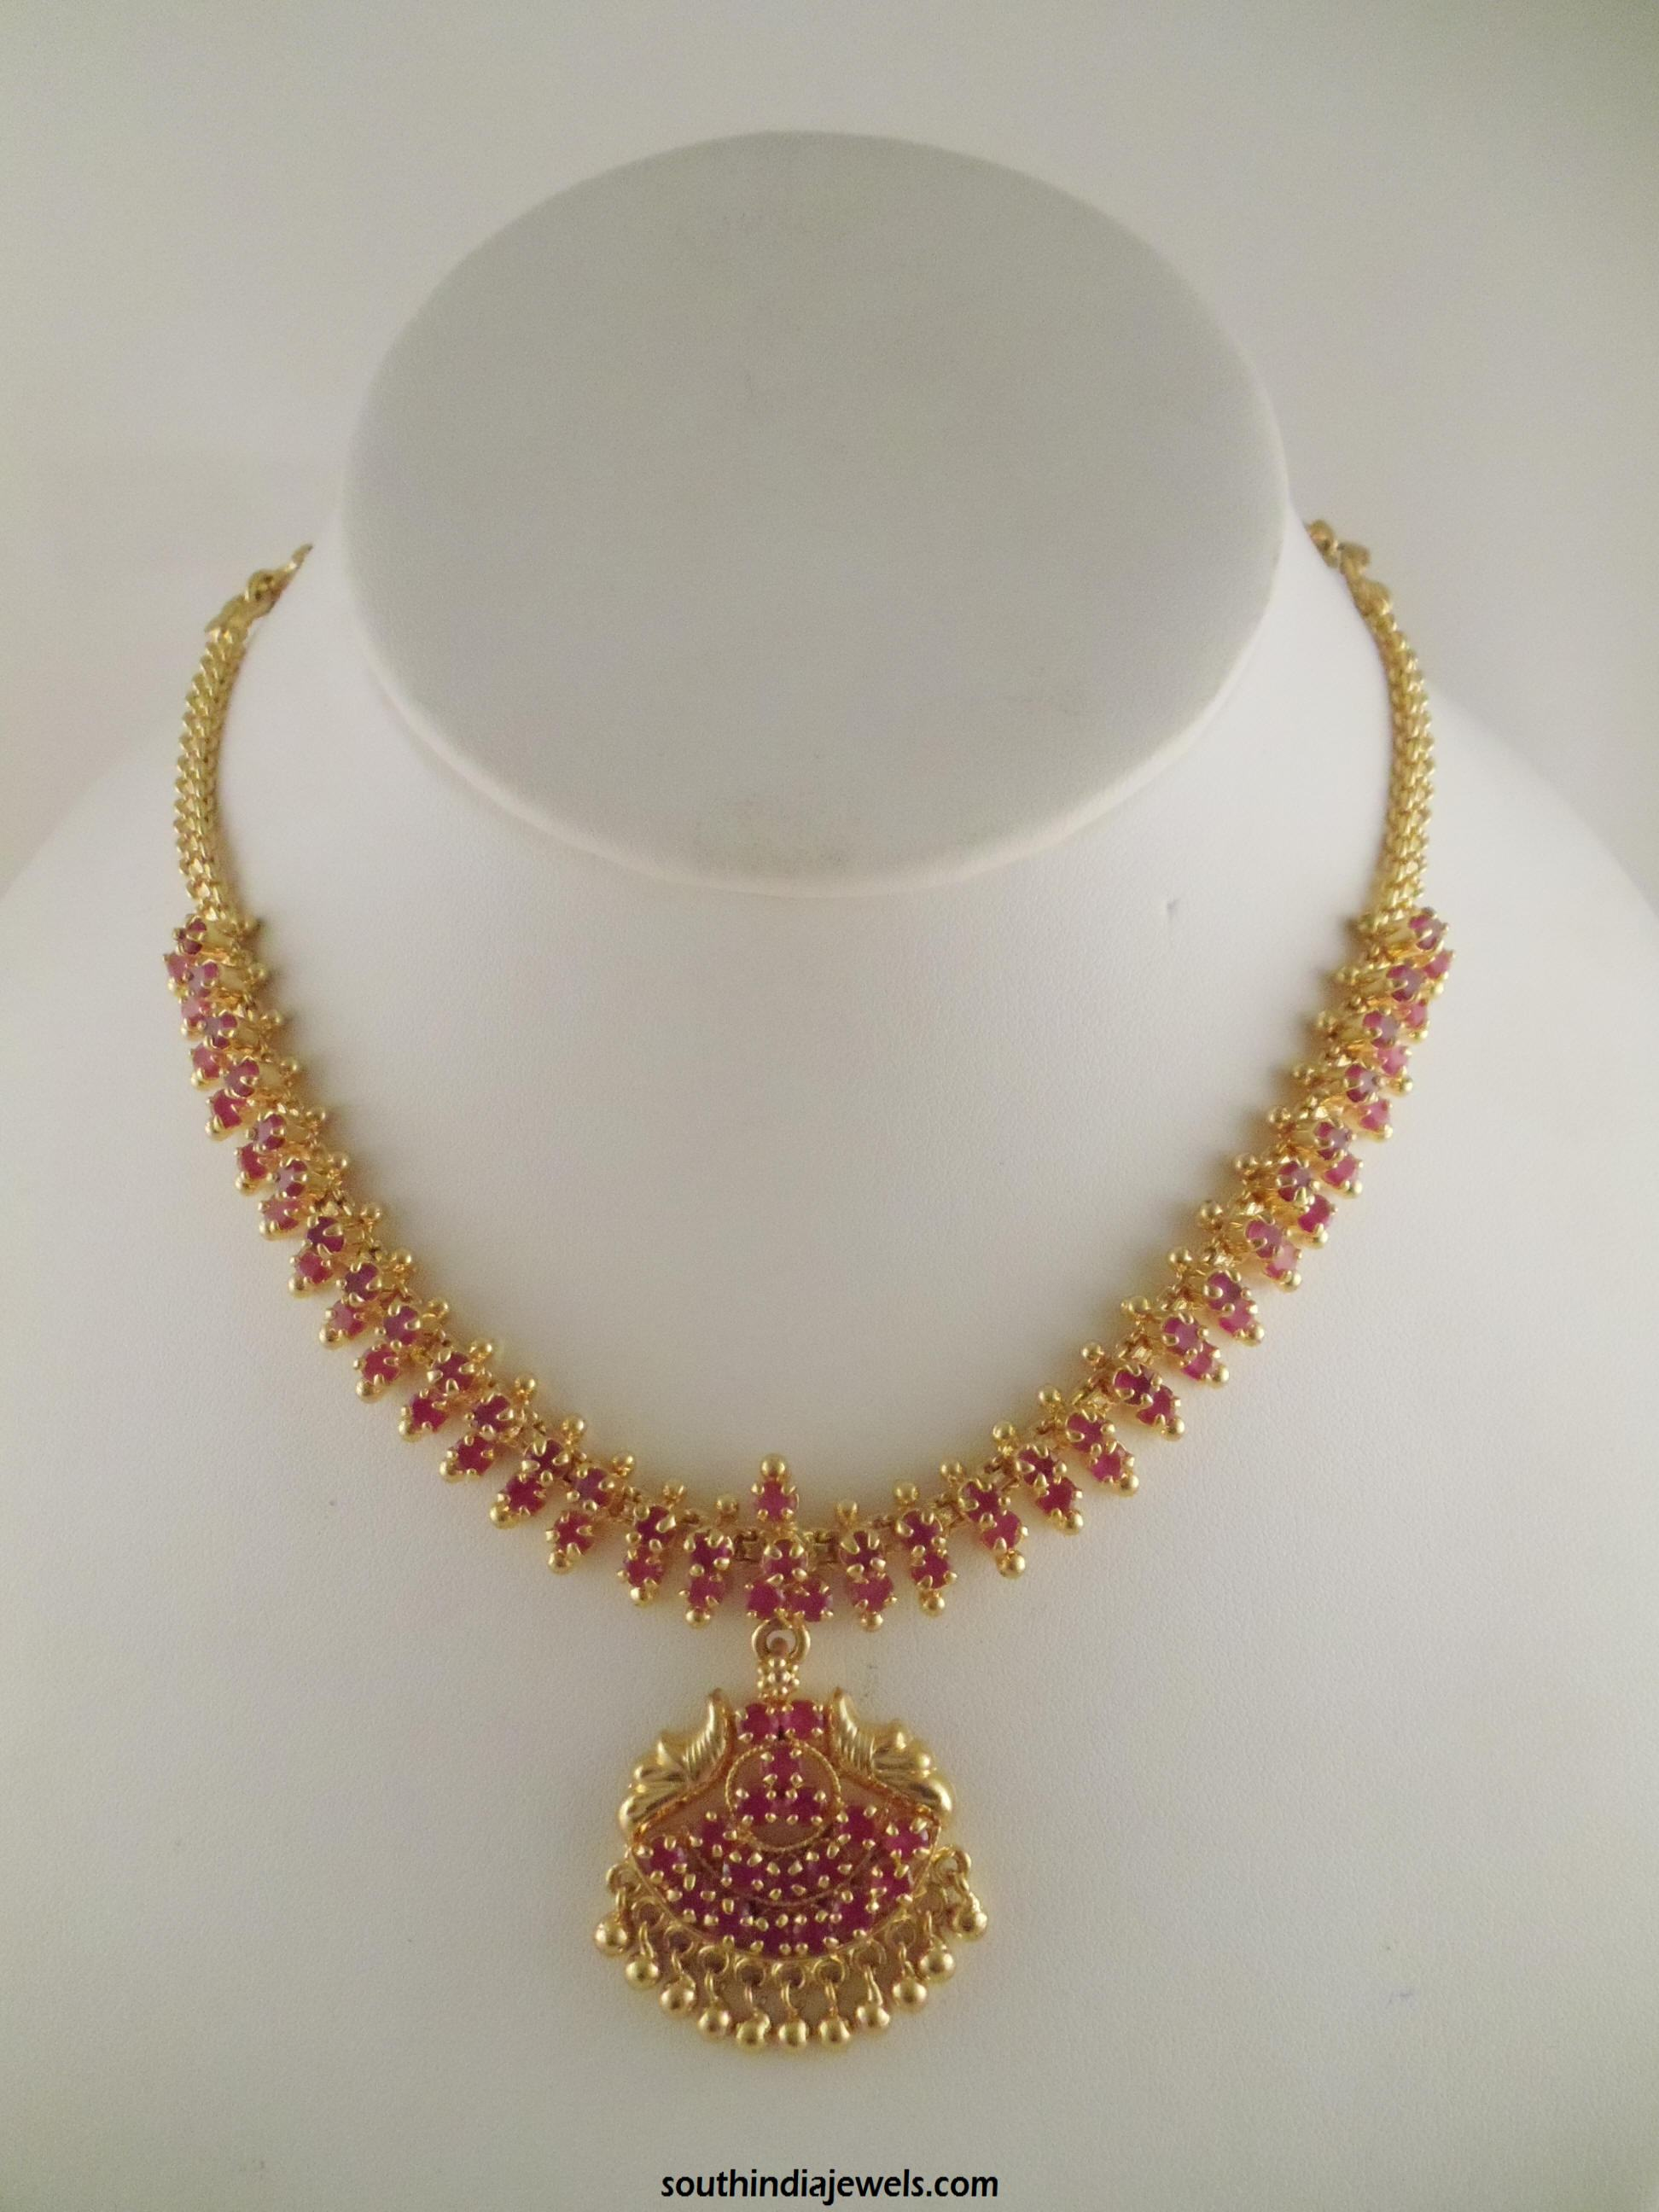 25 Indian Gold Choker Necklace Designs | Styles At Life